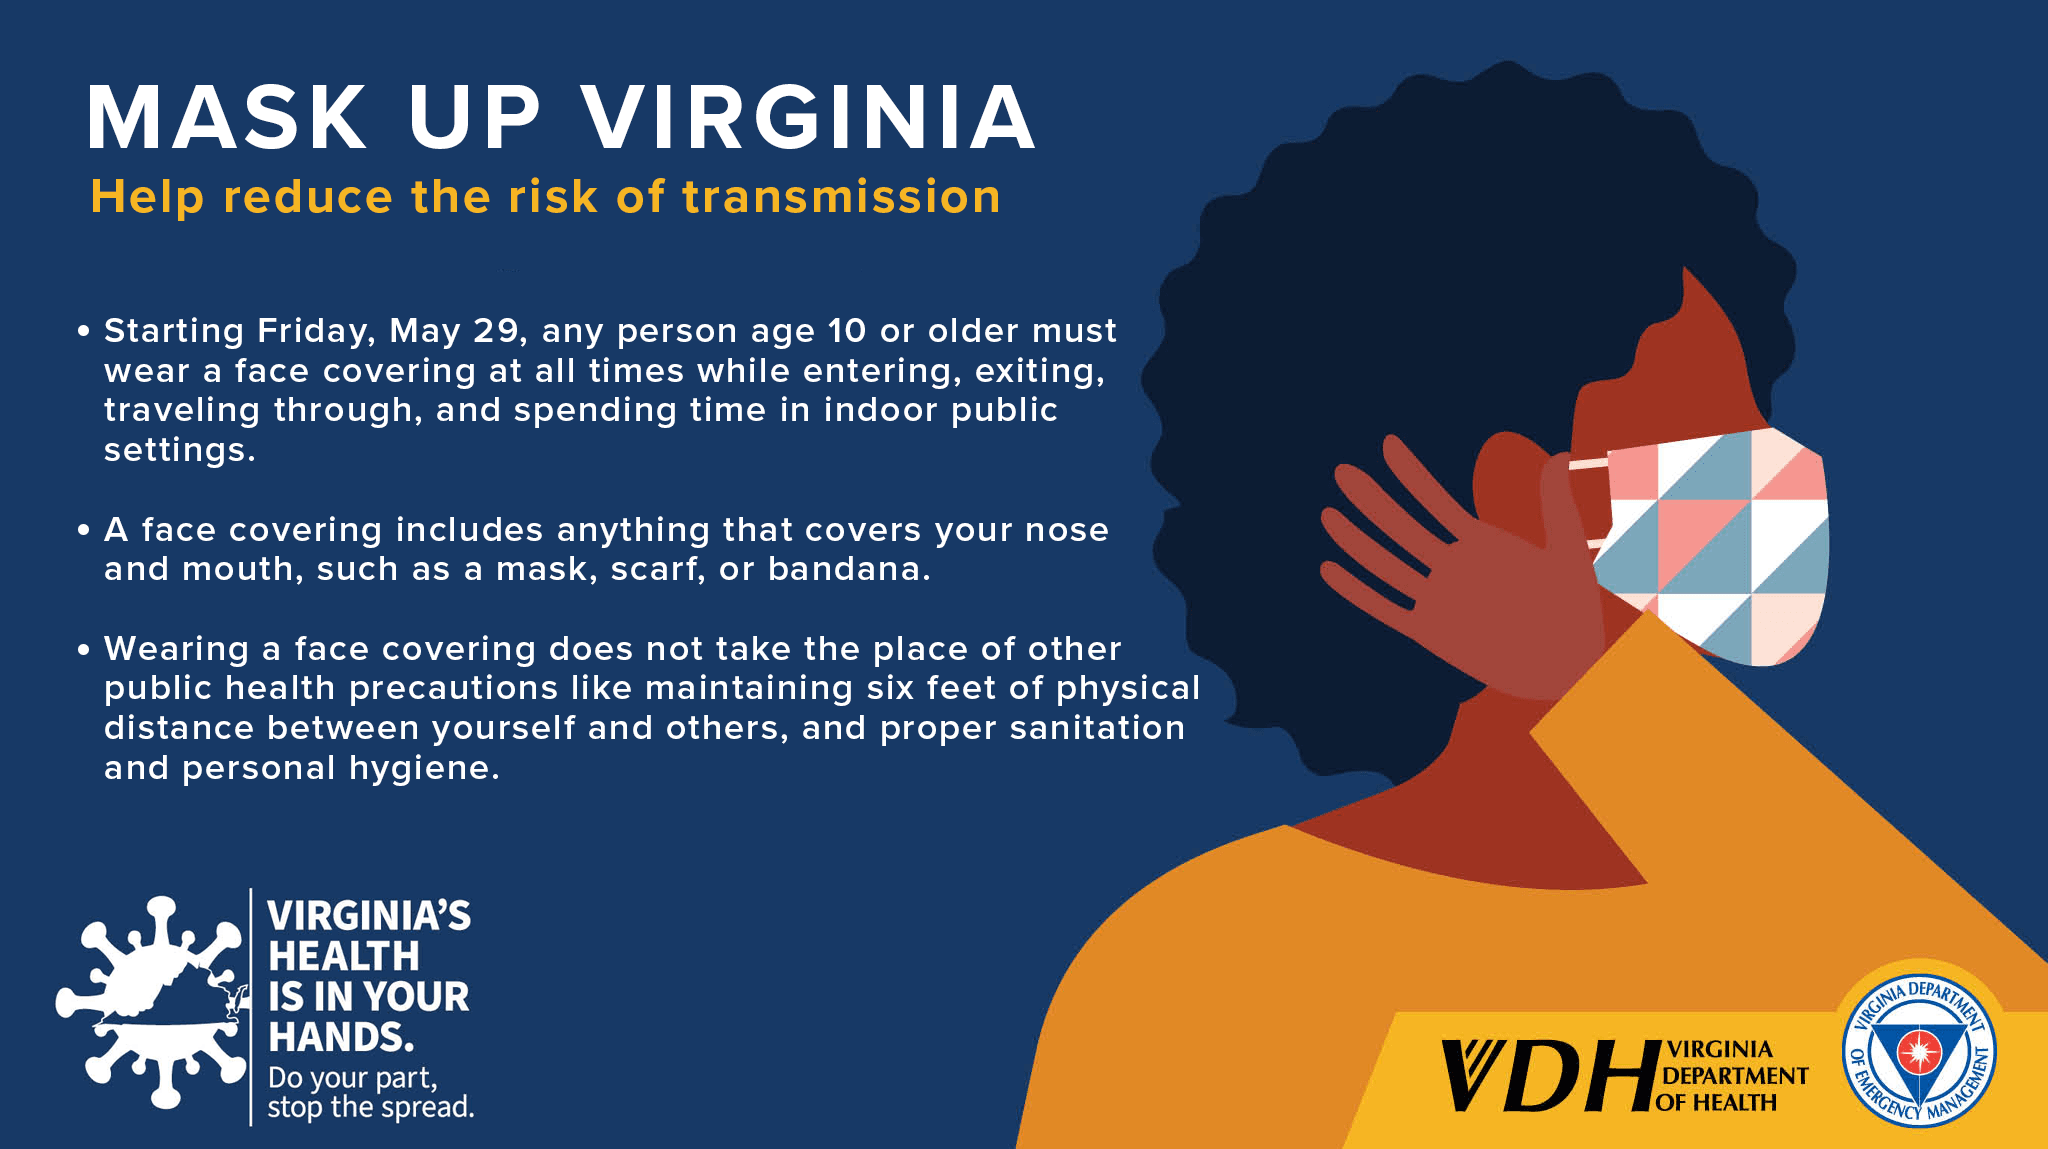 VDH VDEM - Mask Up Virginia - Graphic